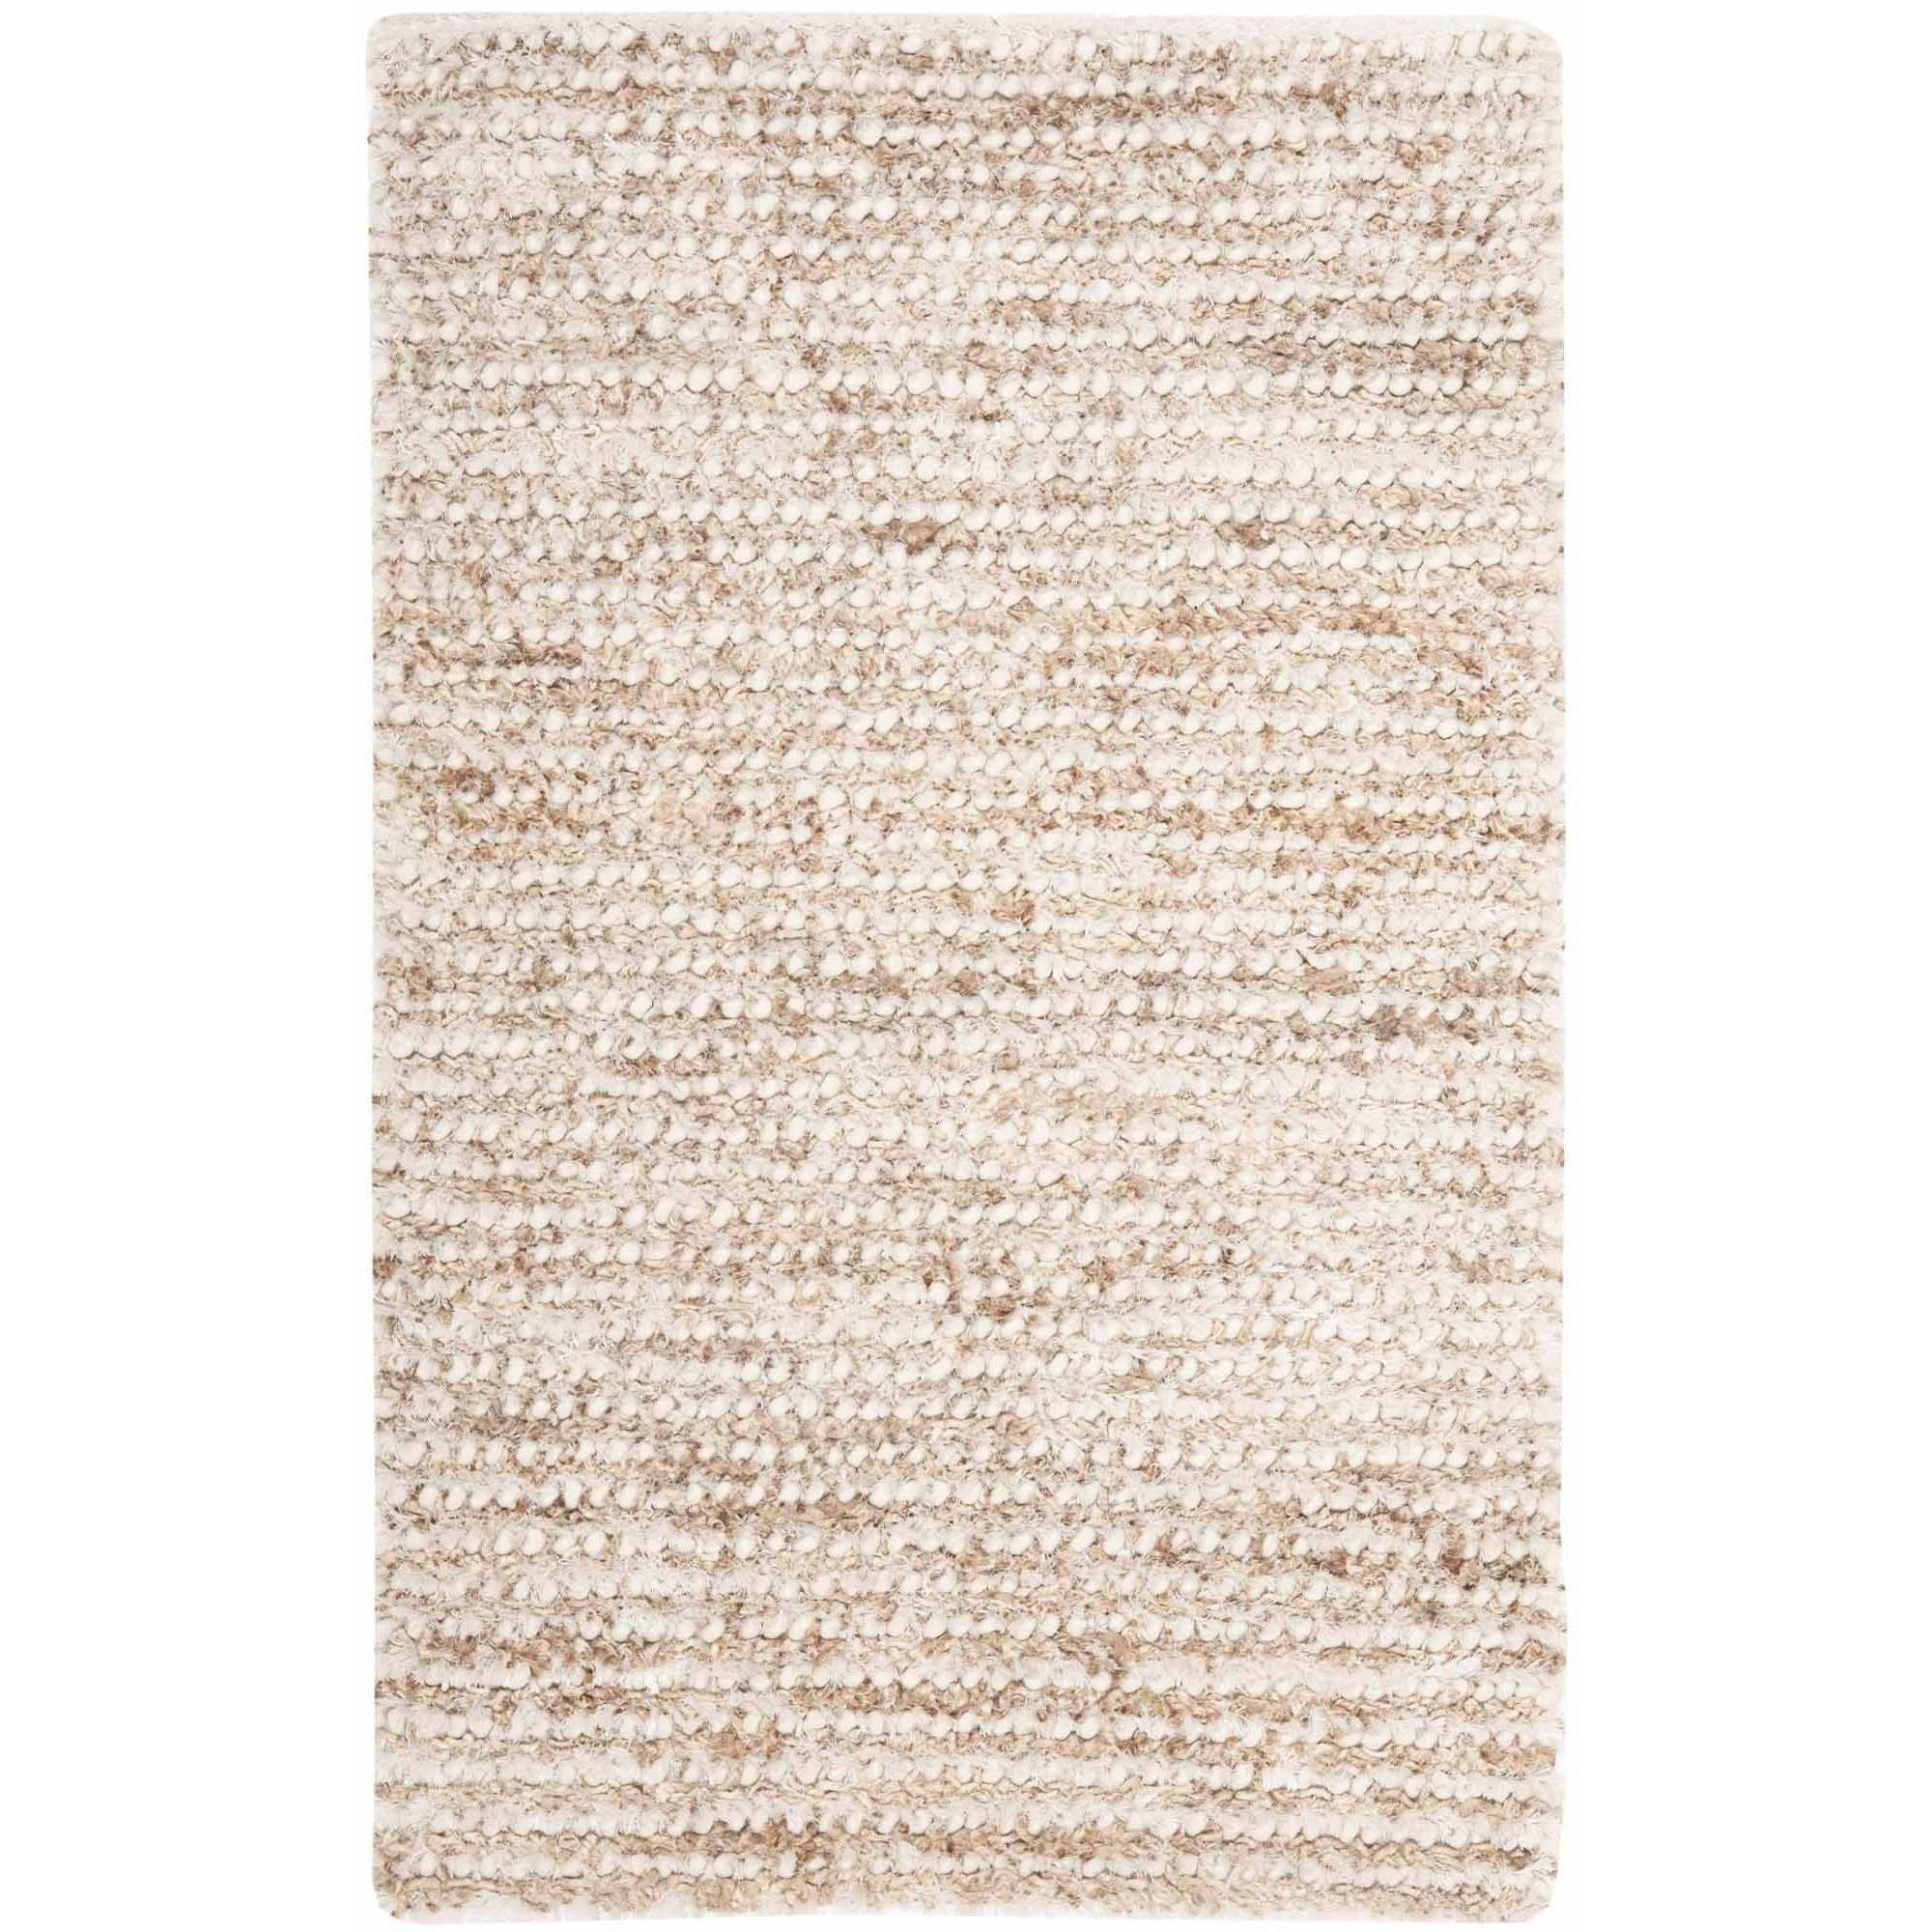 Safavieh Constance Braided Area Rug or Runner